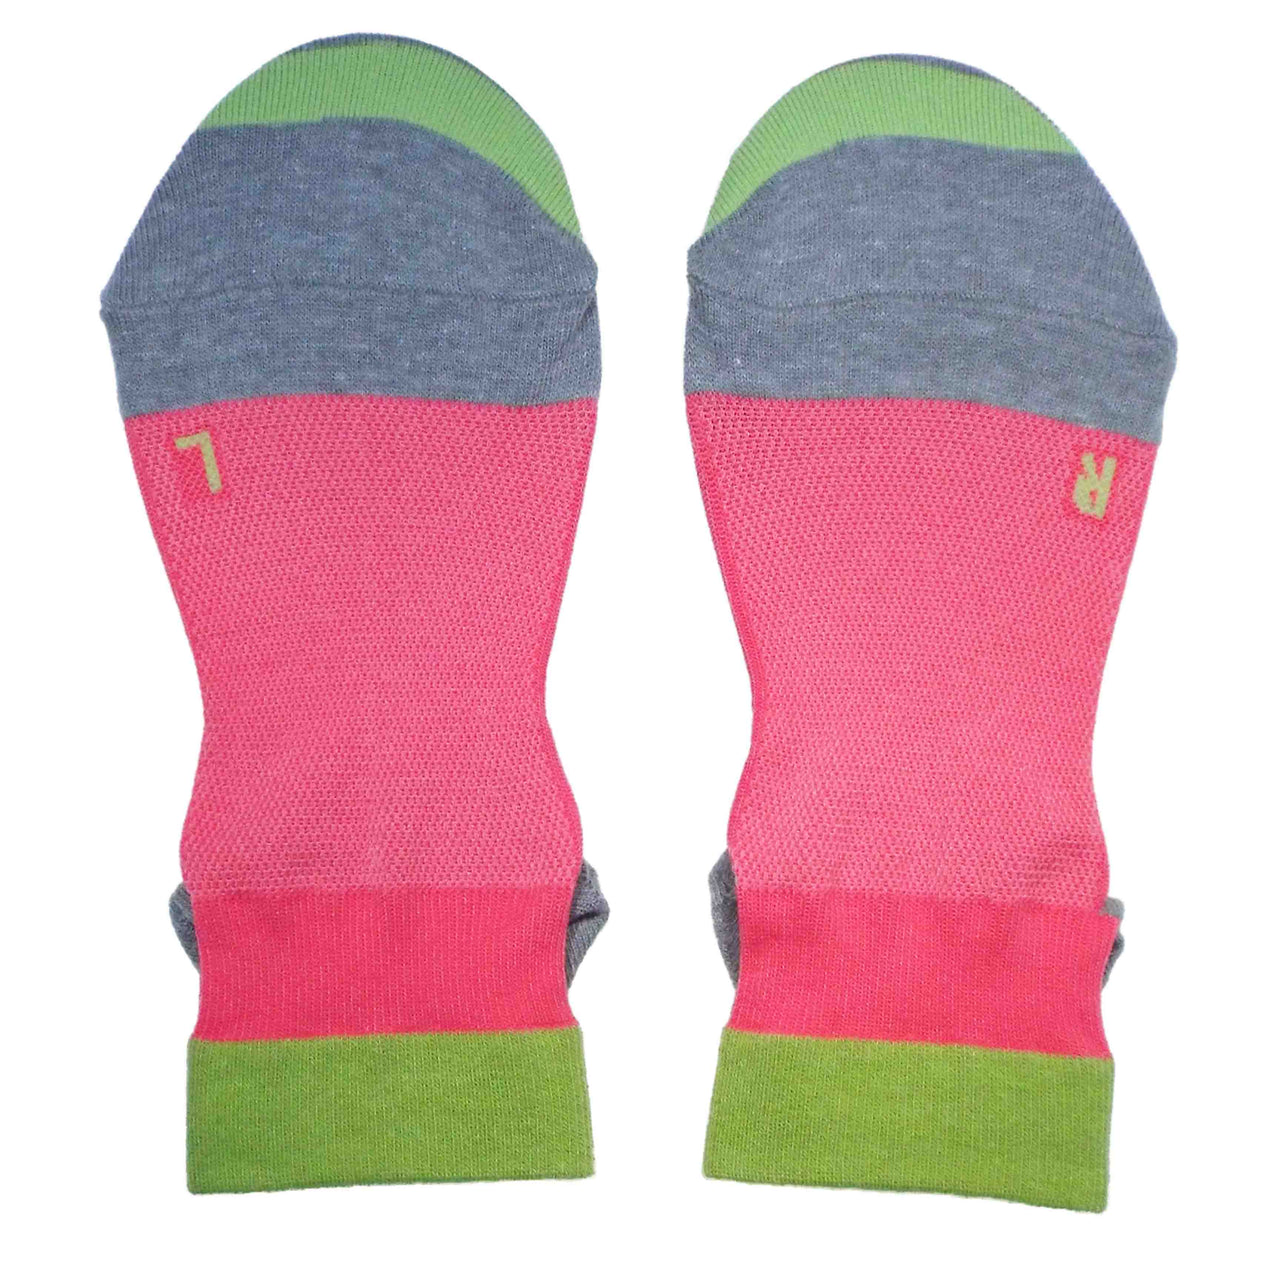 Arch Support Ankle Running Socks with Grips for Women | Hot Pink - CHERRYSTONE by MARKET TO JAPAN LLC